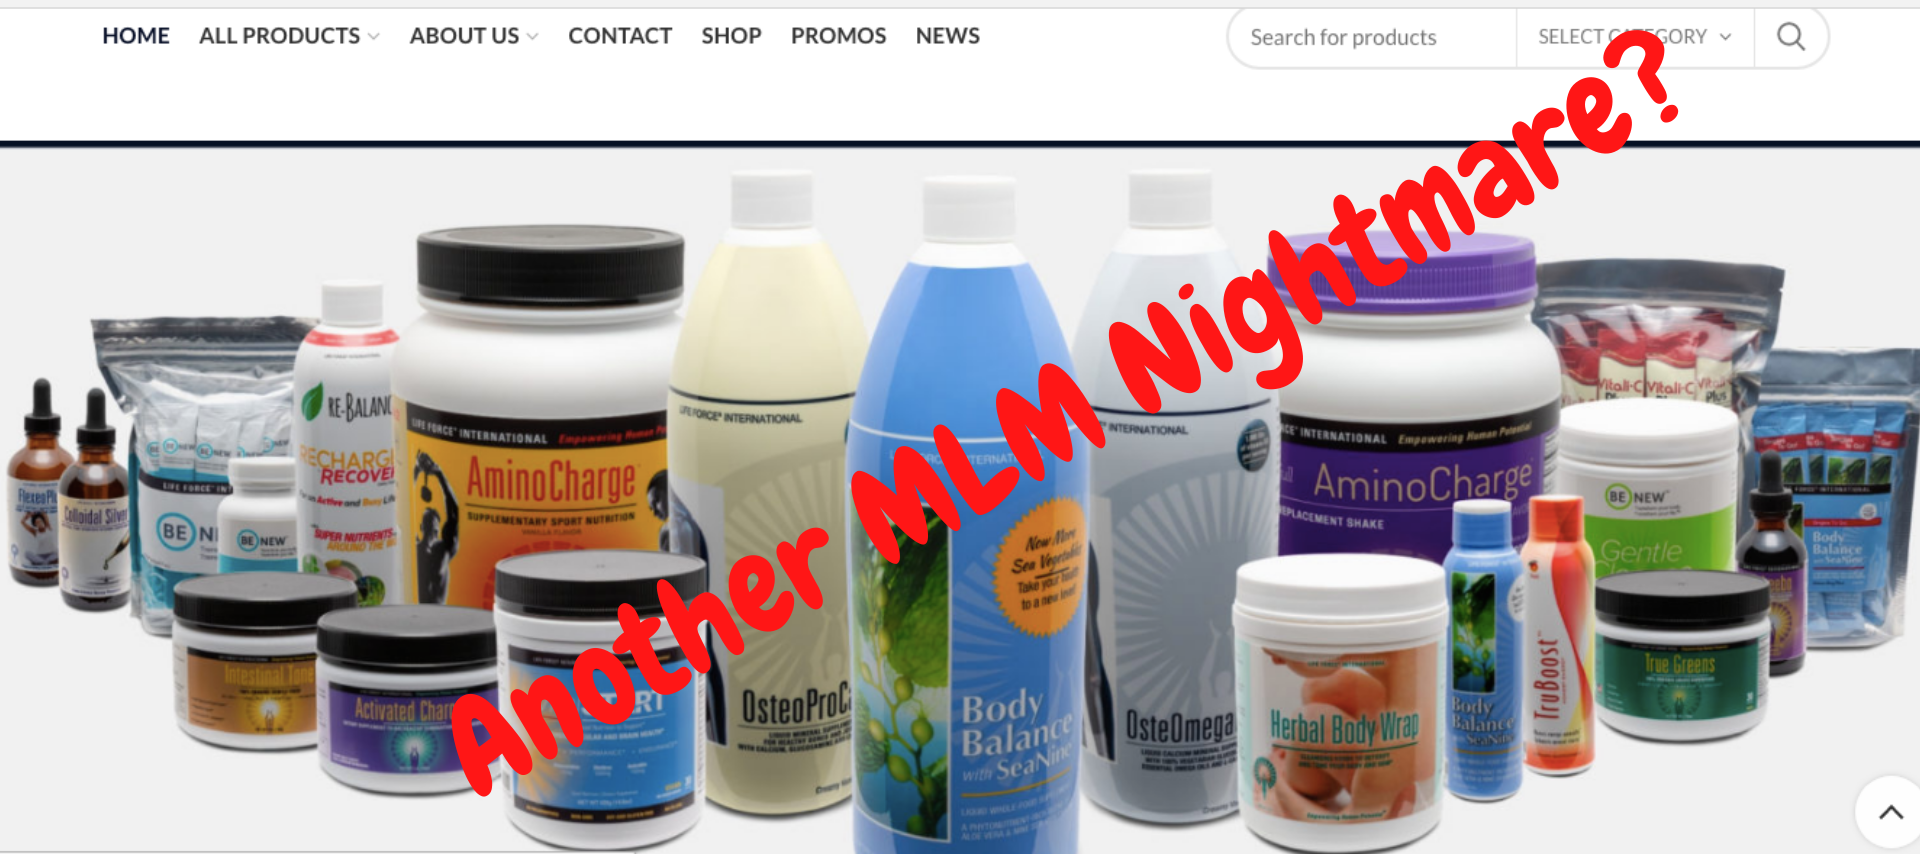 Is Life Force International a scam? Life Force International's homepage